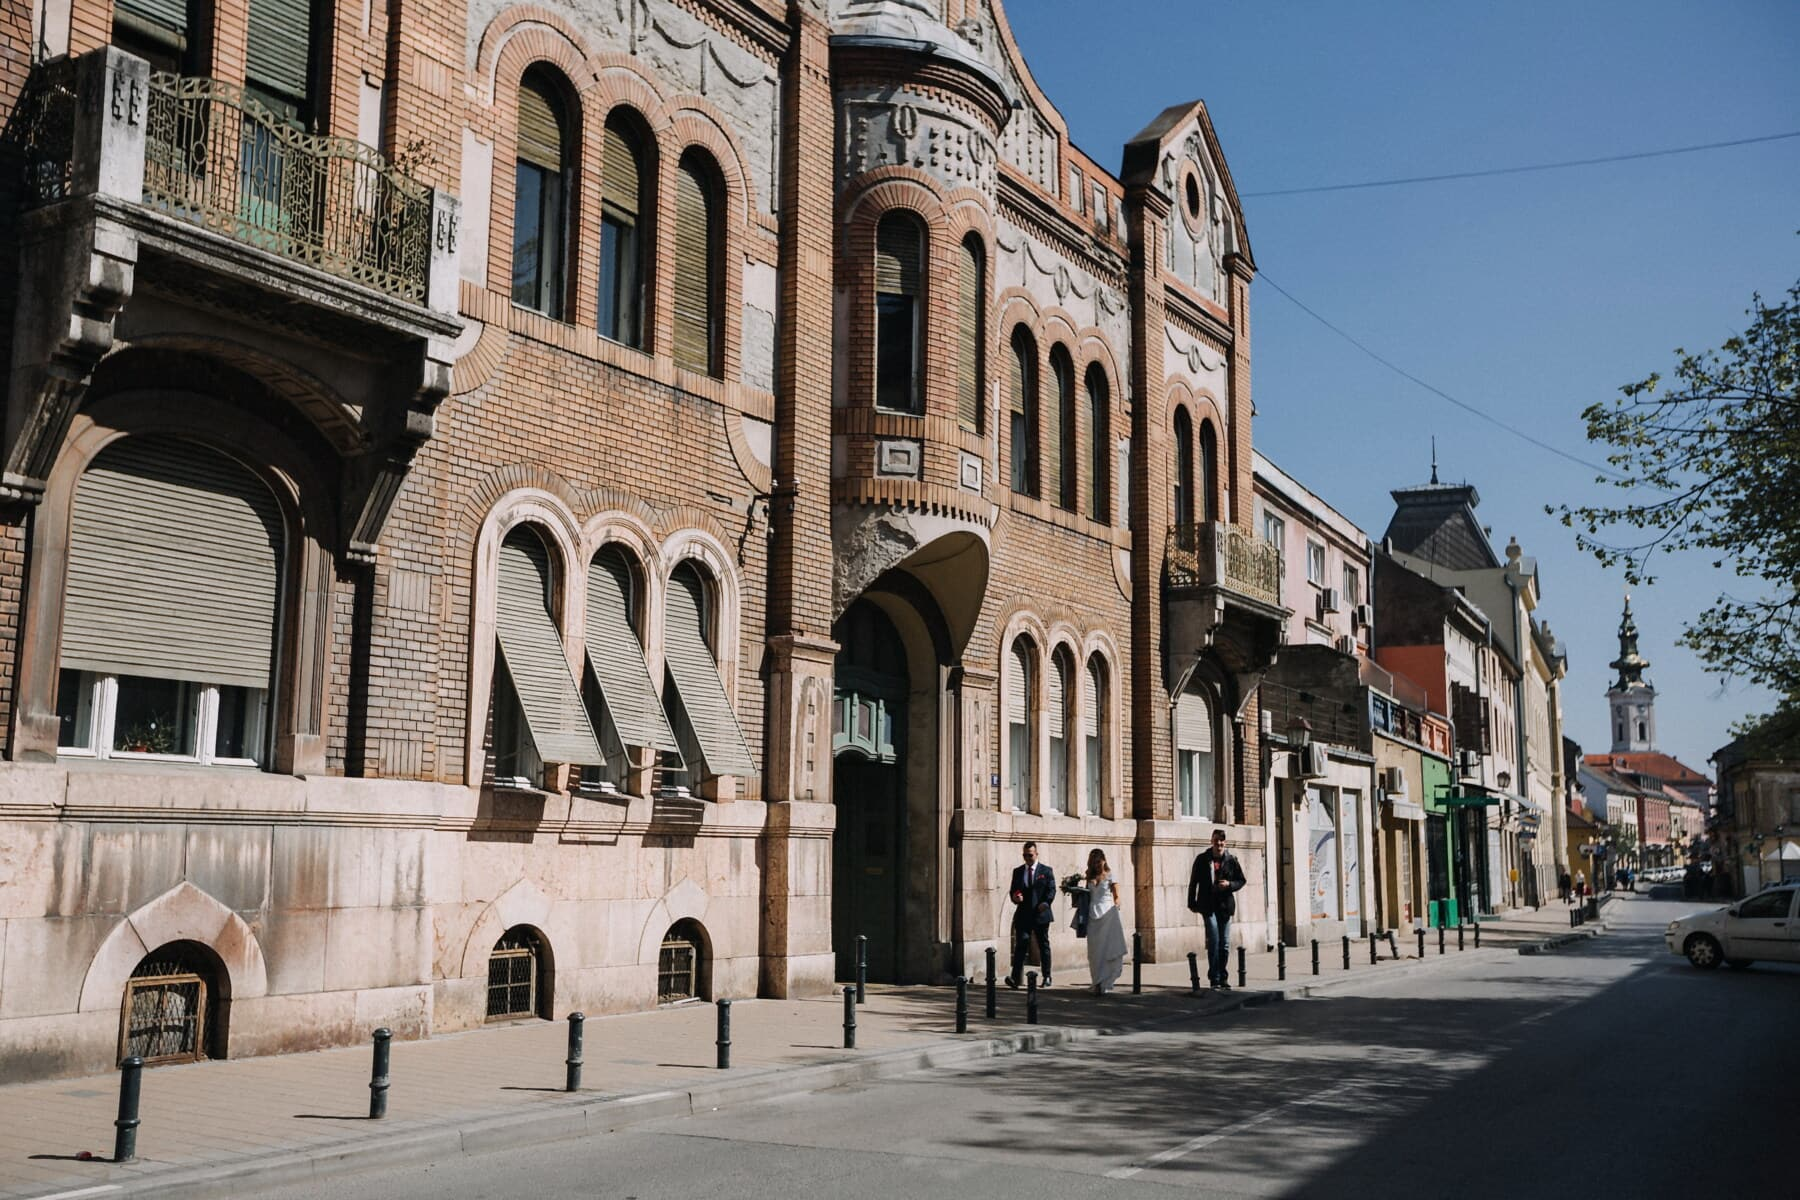 east, European, street, town, city, architecture, building, facade, old, urban